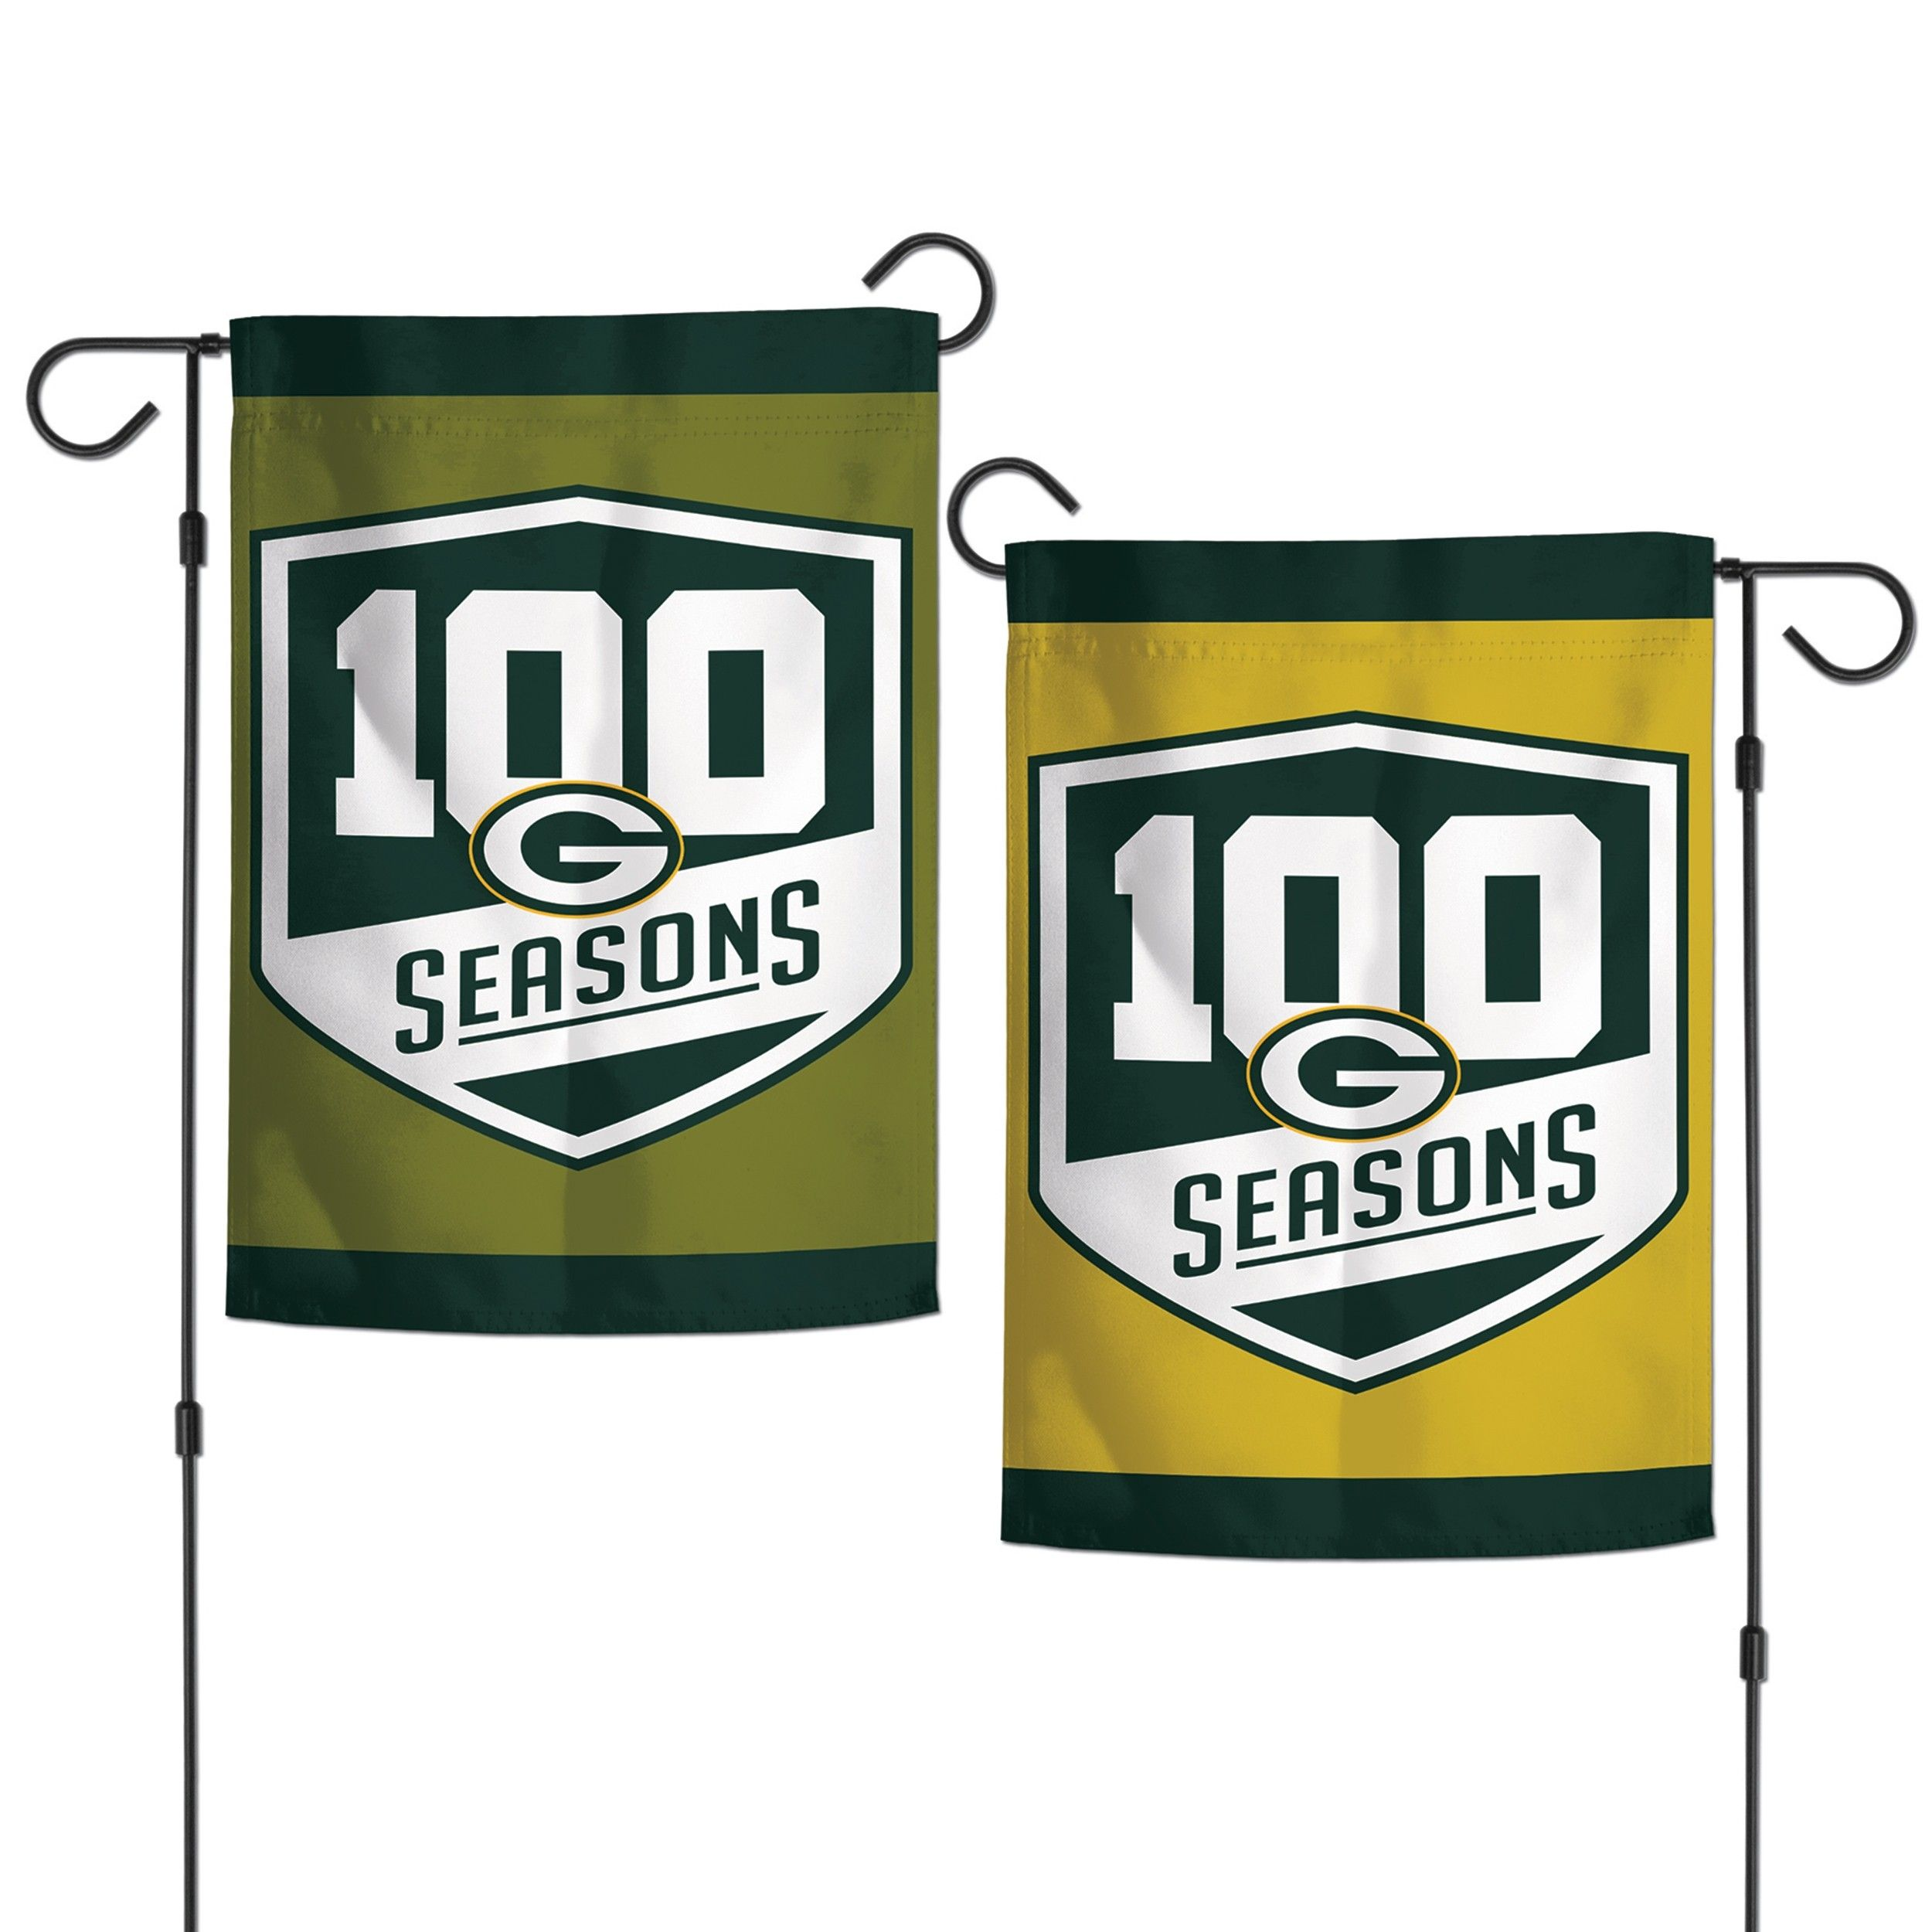 outlet store bbaf9 8a198 Packers 100 Seasons 2-Sided Garden Flag | Packer | Packers ...